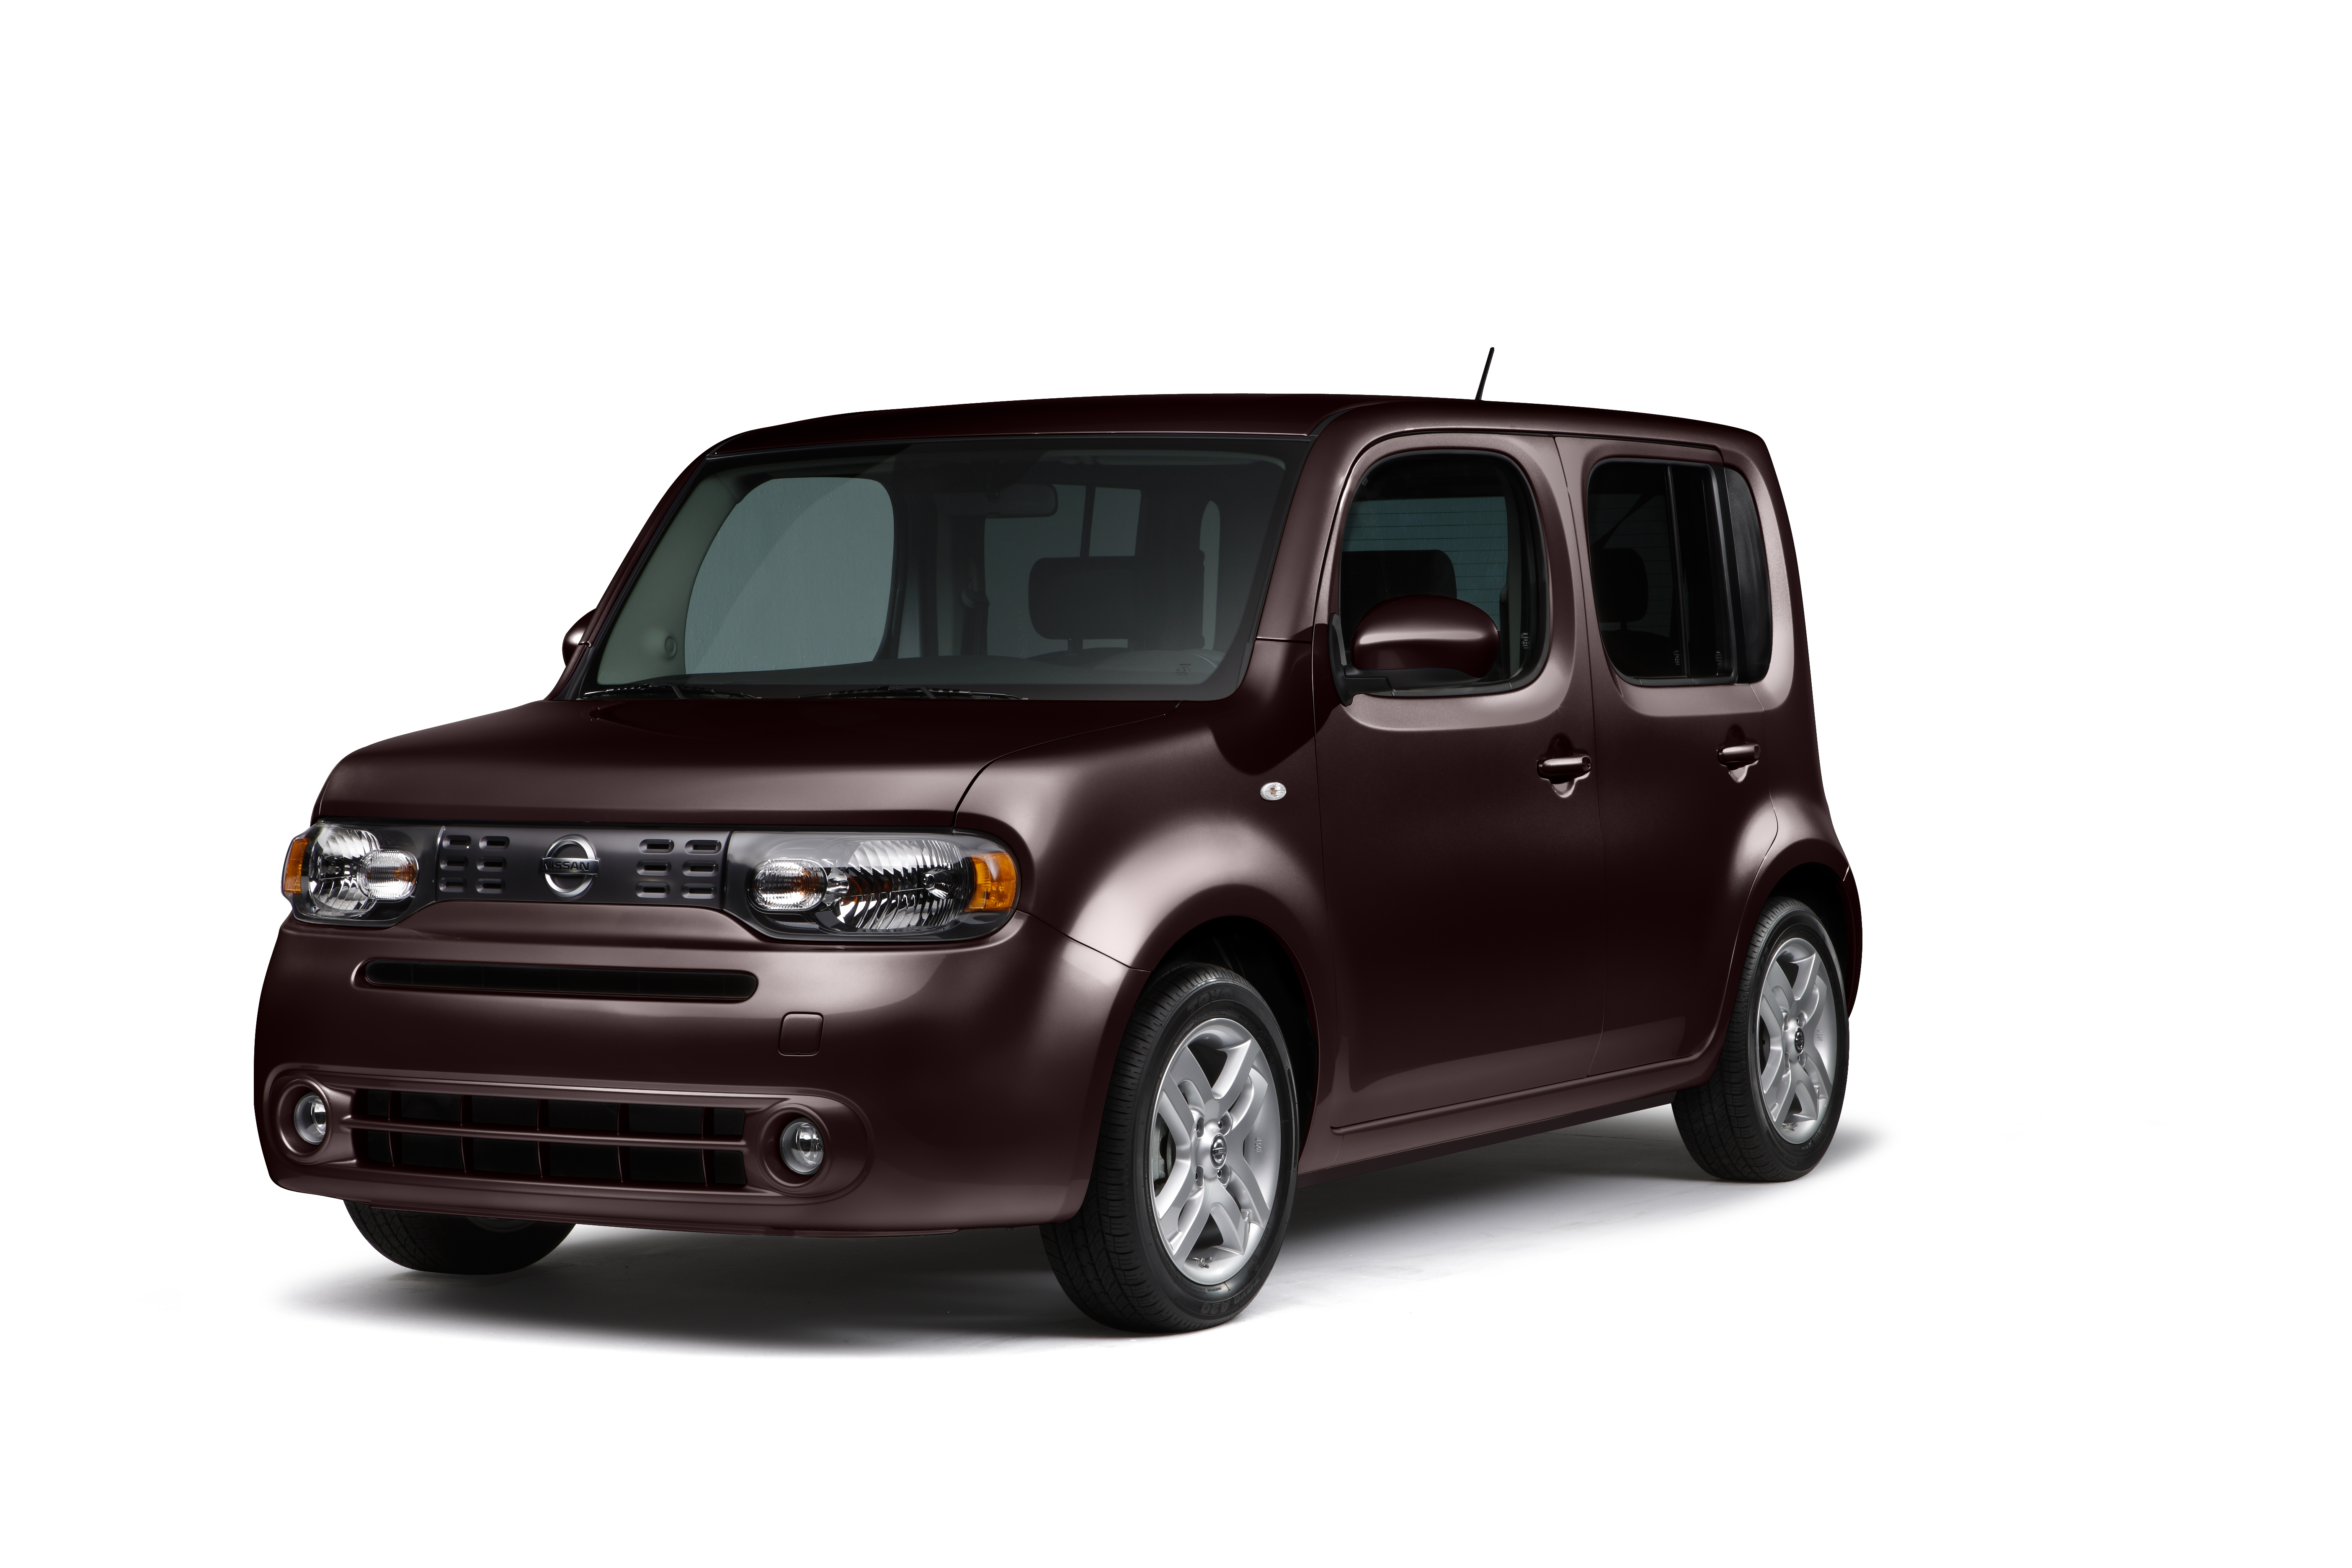 deals offers for sale finance gal illinois md arlington heights il hd nissan lease dealership in armada zoom and ext dealers new